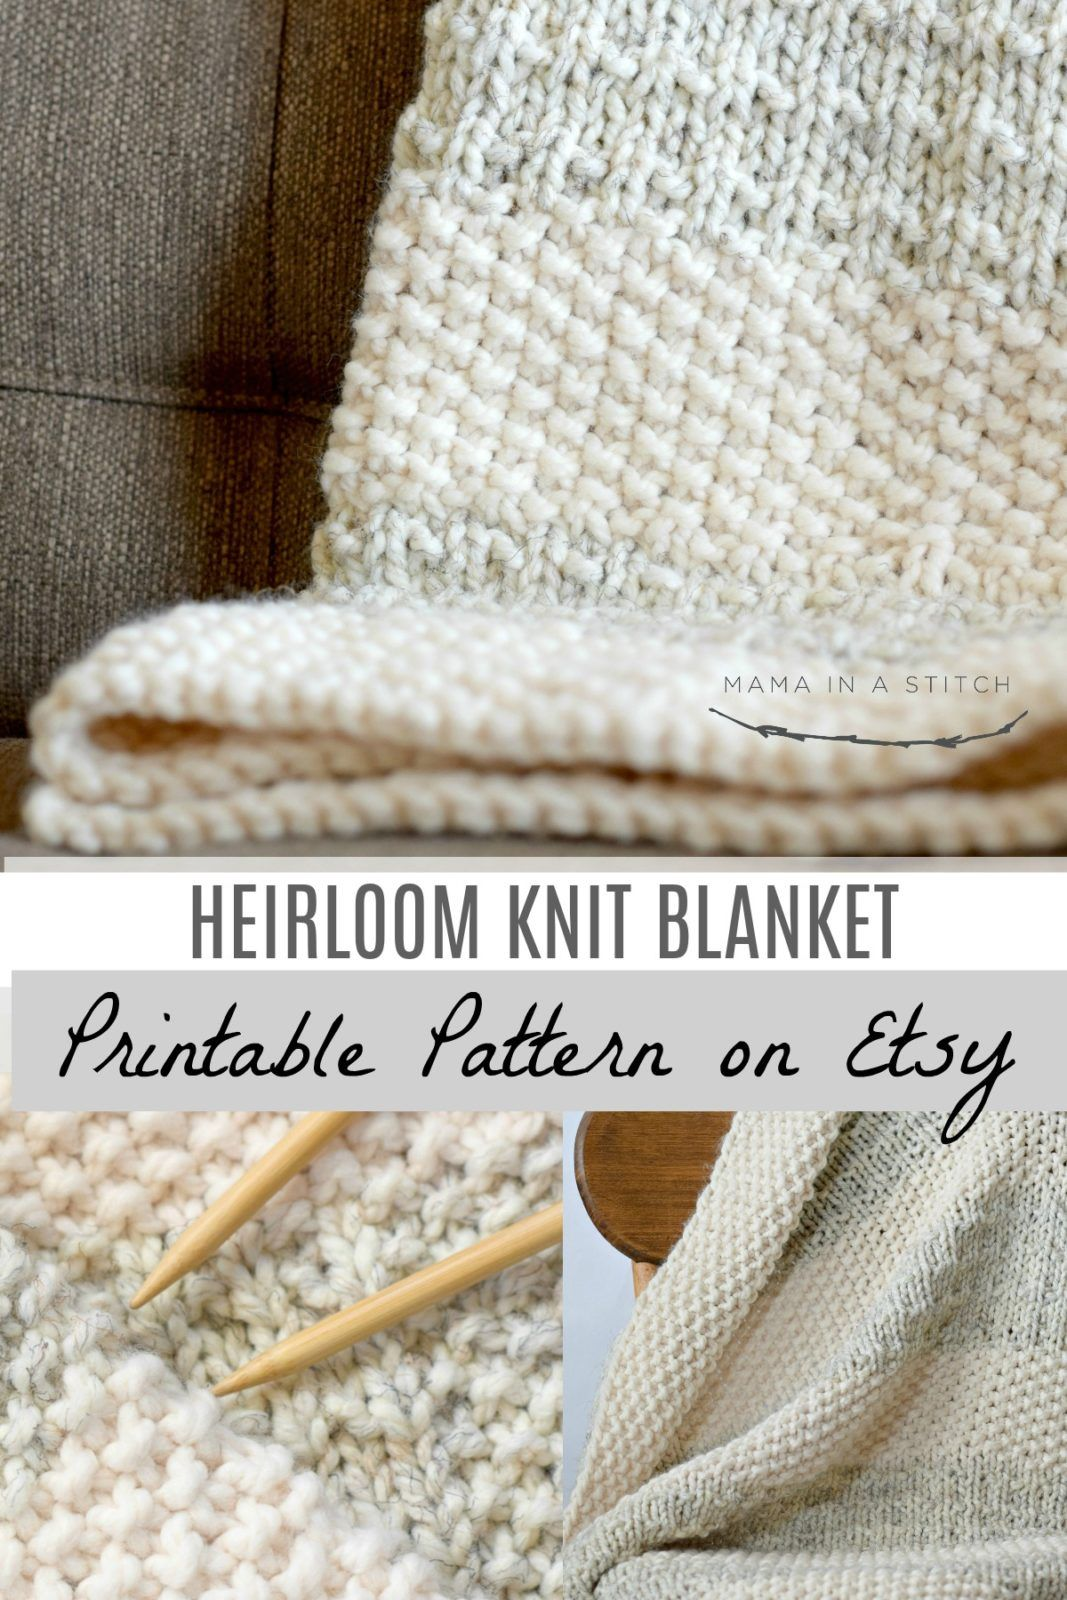 Easy Heirloom Knit Blanket Pattern en 2018 | Craft Room Doins ...